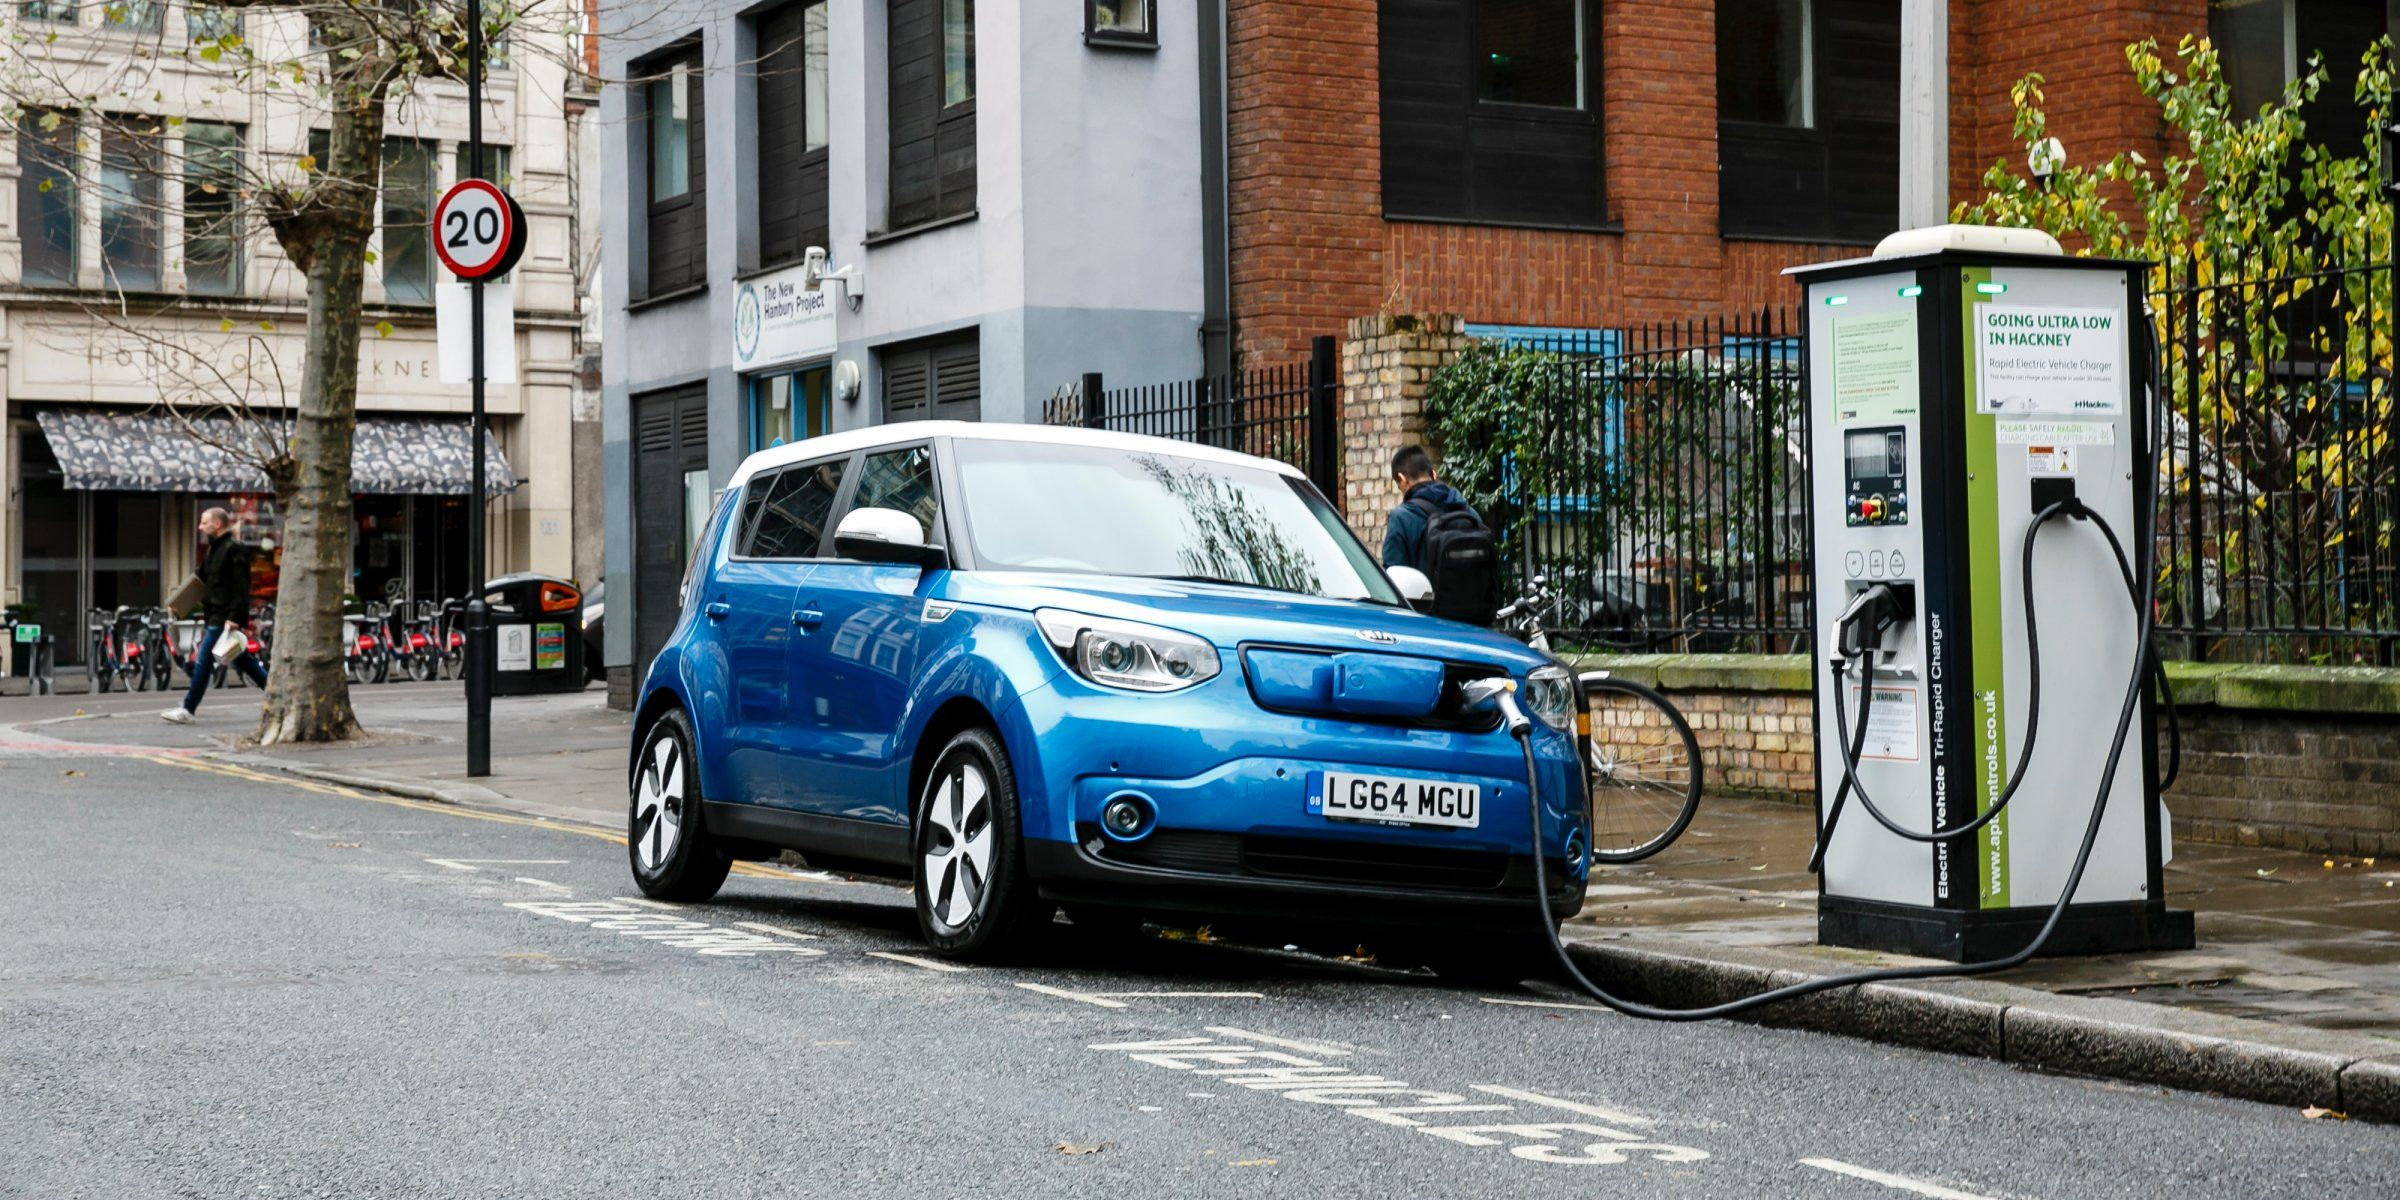 Big policy shift needed for electric cars to succeed in